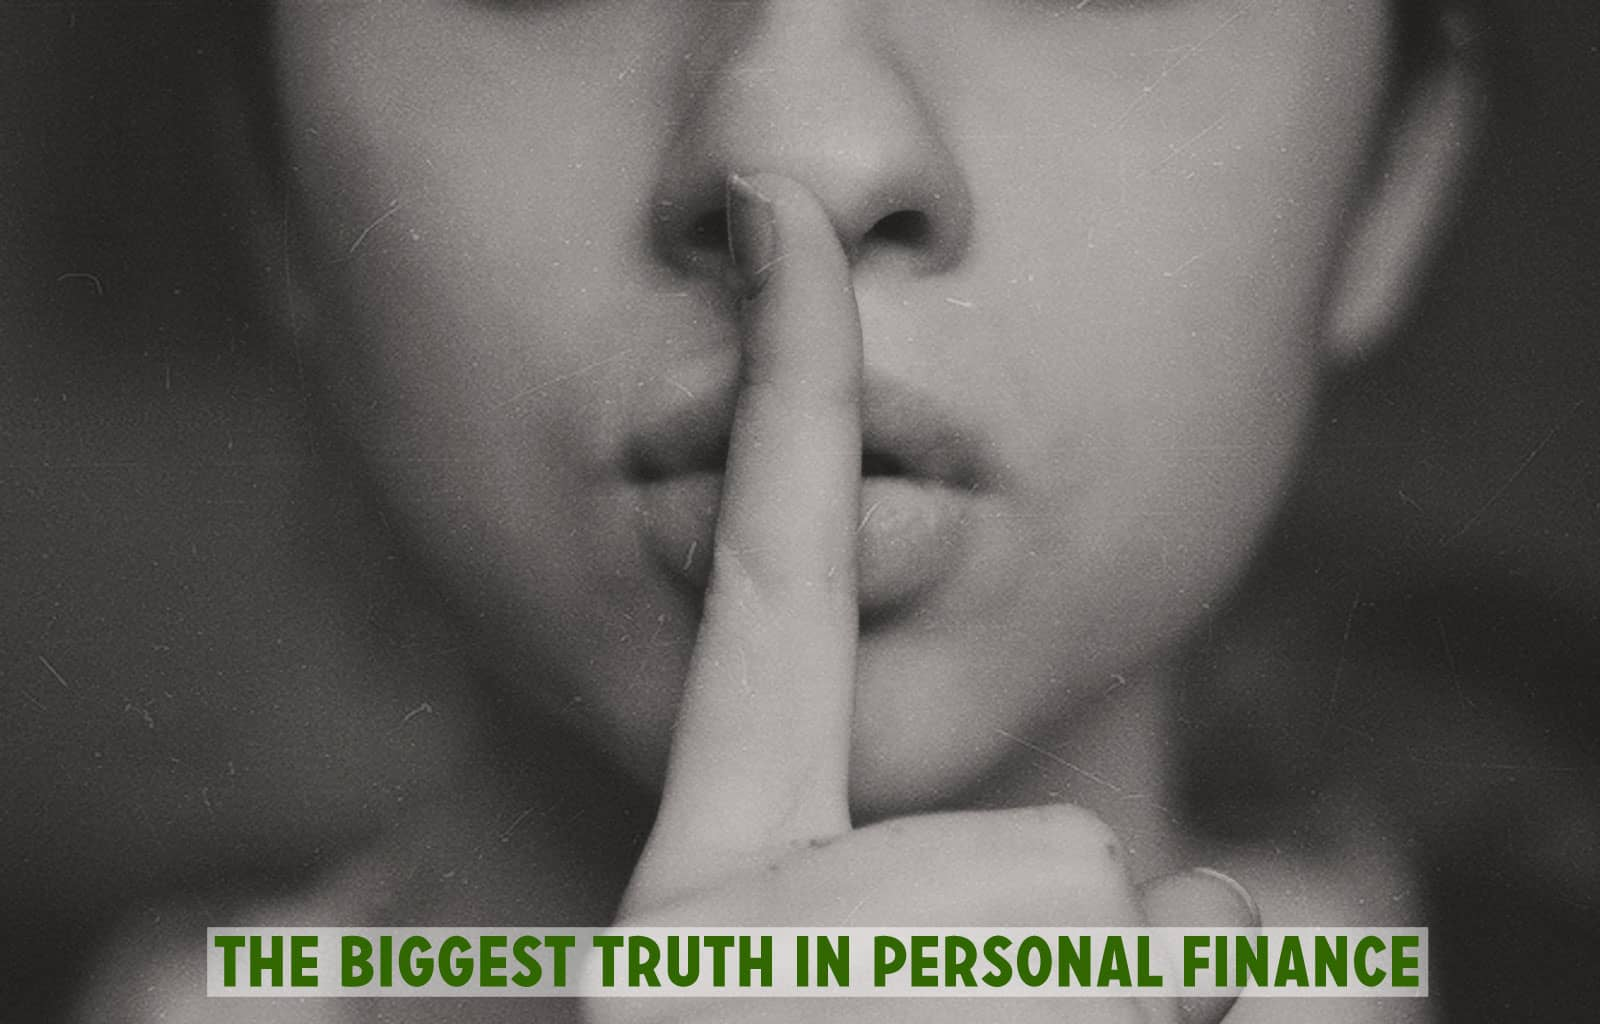 The biggest truth in personal finance